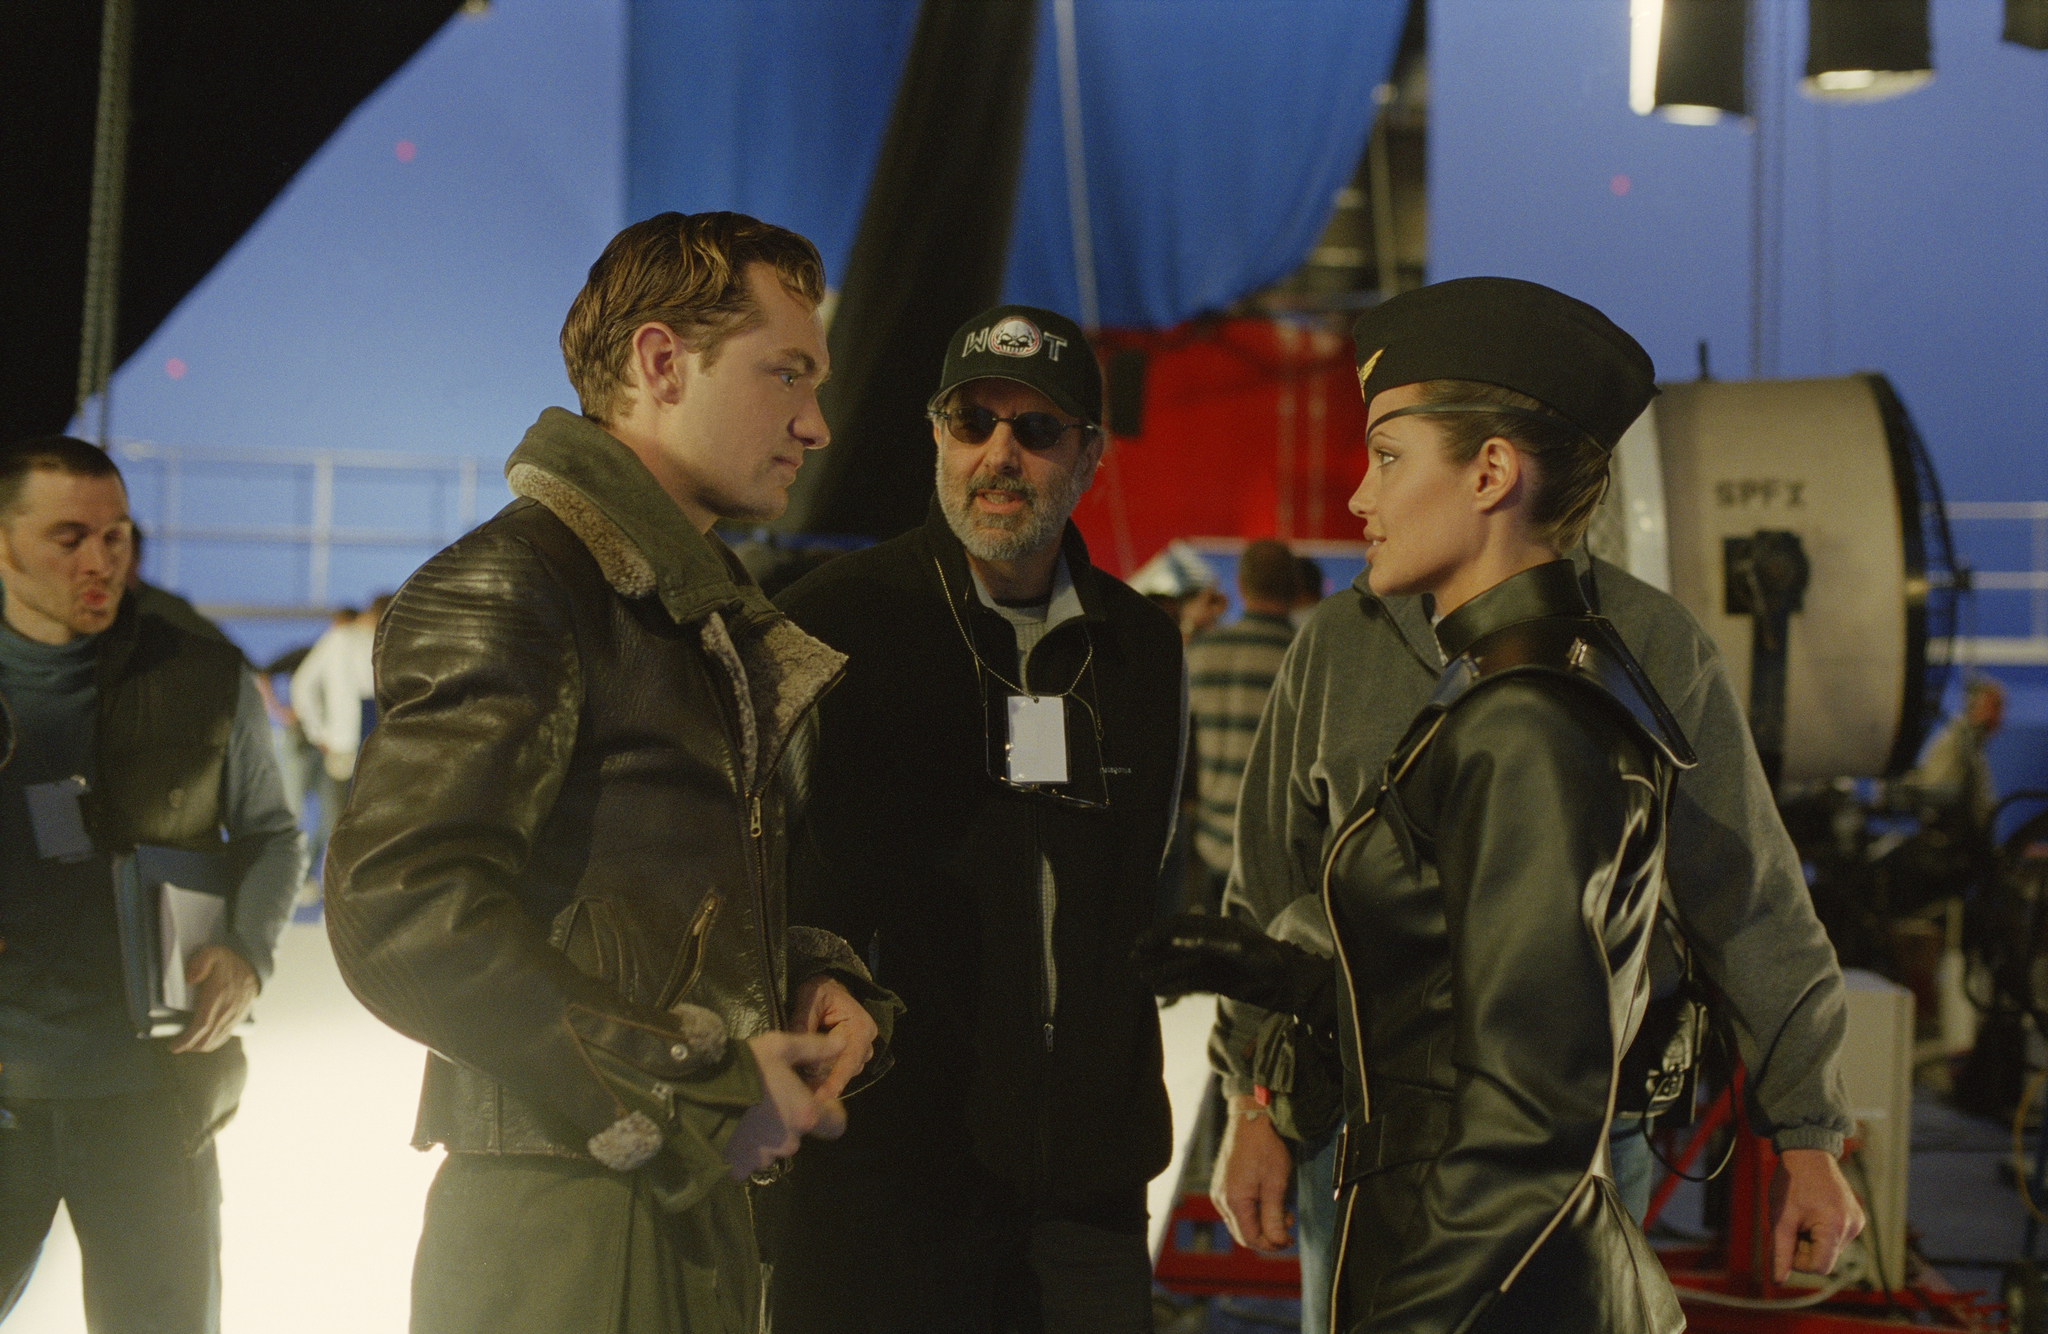 Jude Law, Jon Avnet, and Angelina Jolie in Sky Captain and the World of Tomorrow (2004)